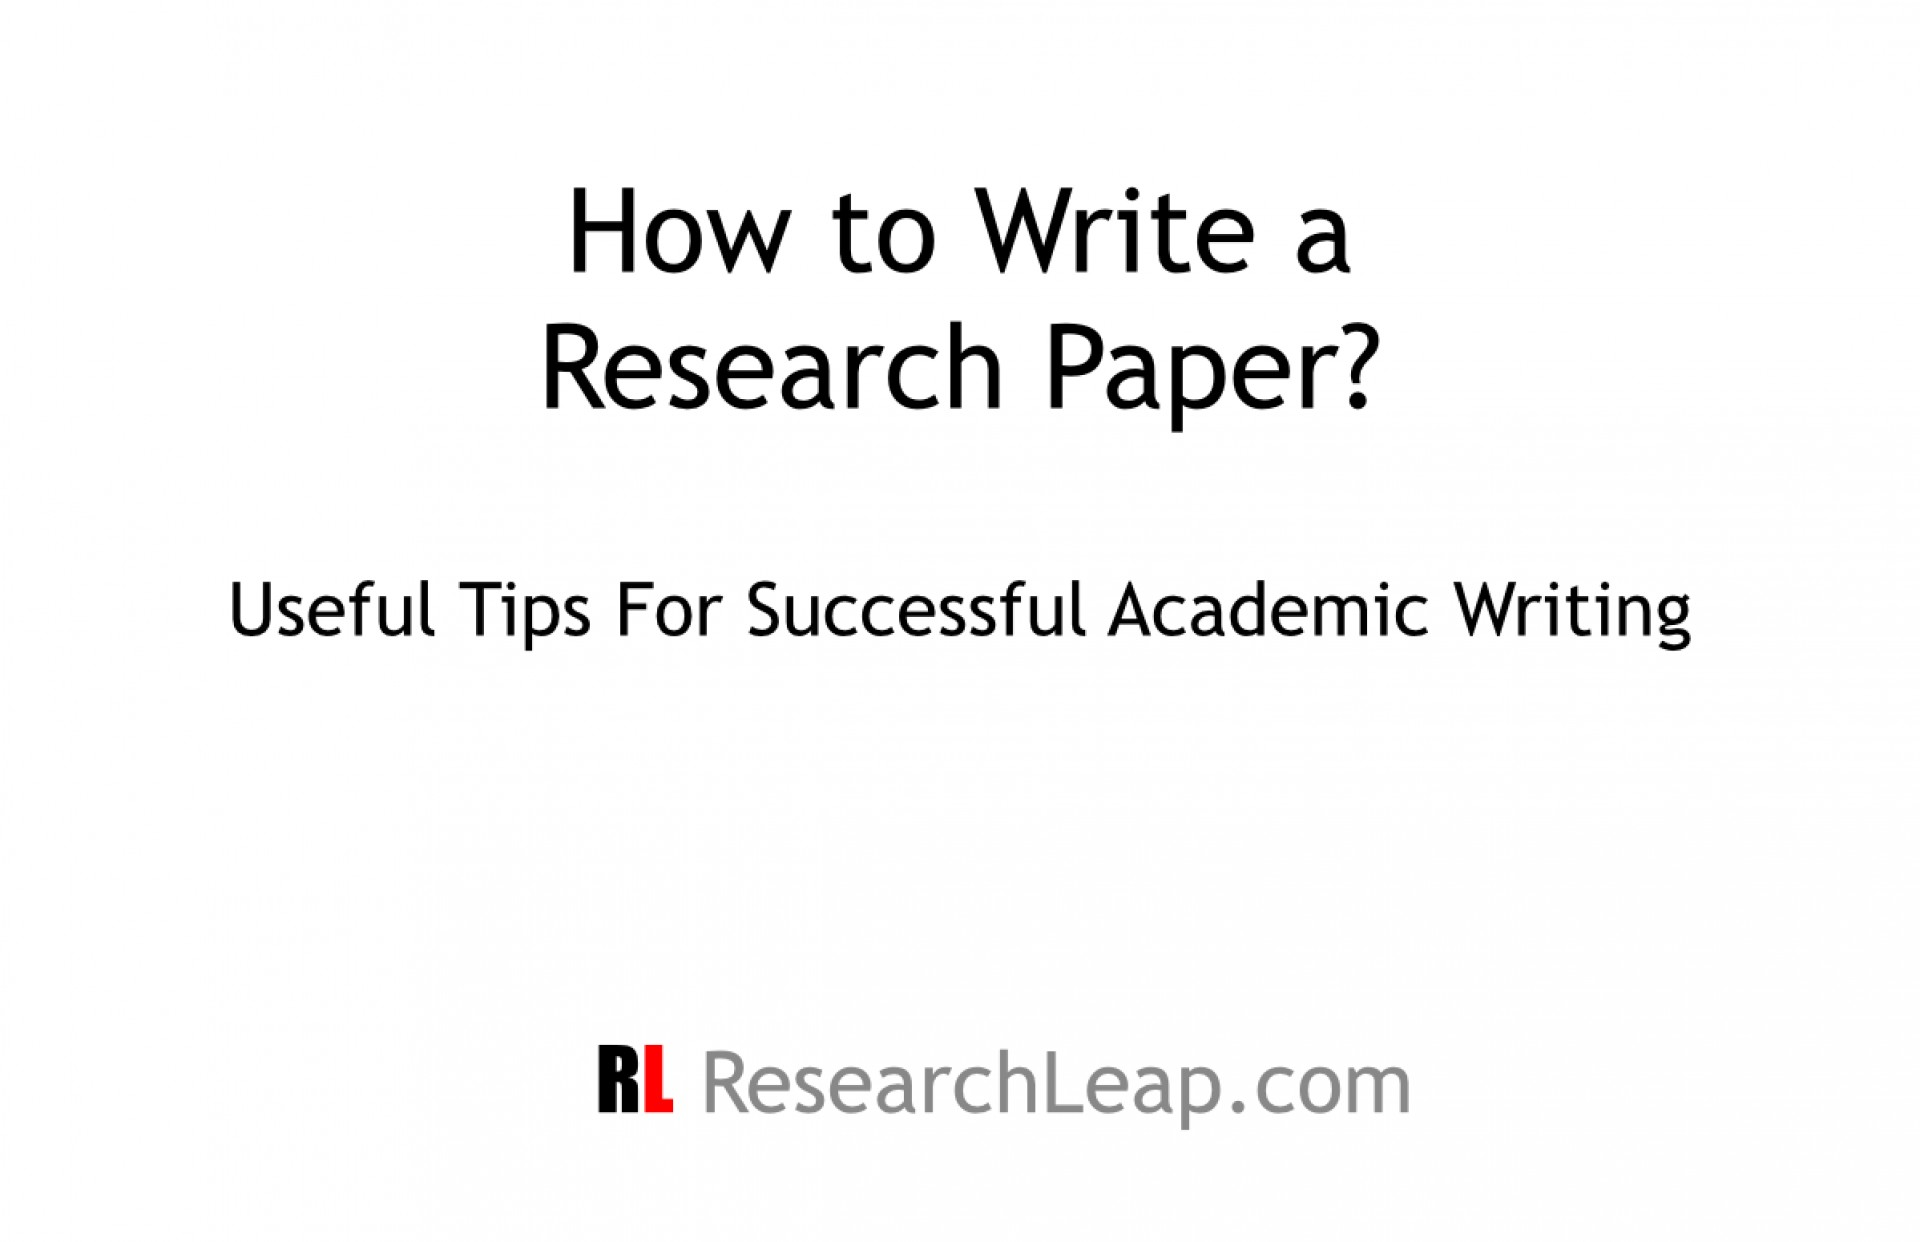 015 Tips For Writing Researchs Ppt Entering Unforgettable Research Papers A Paper Pdf In College 1920